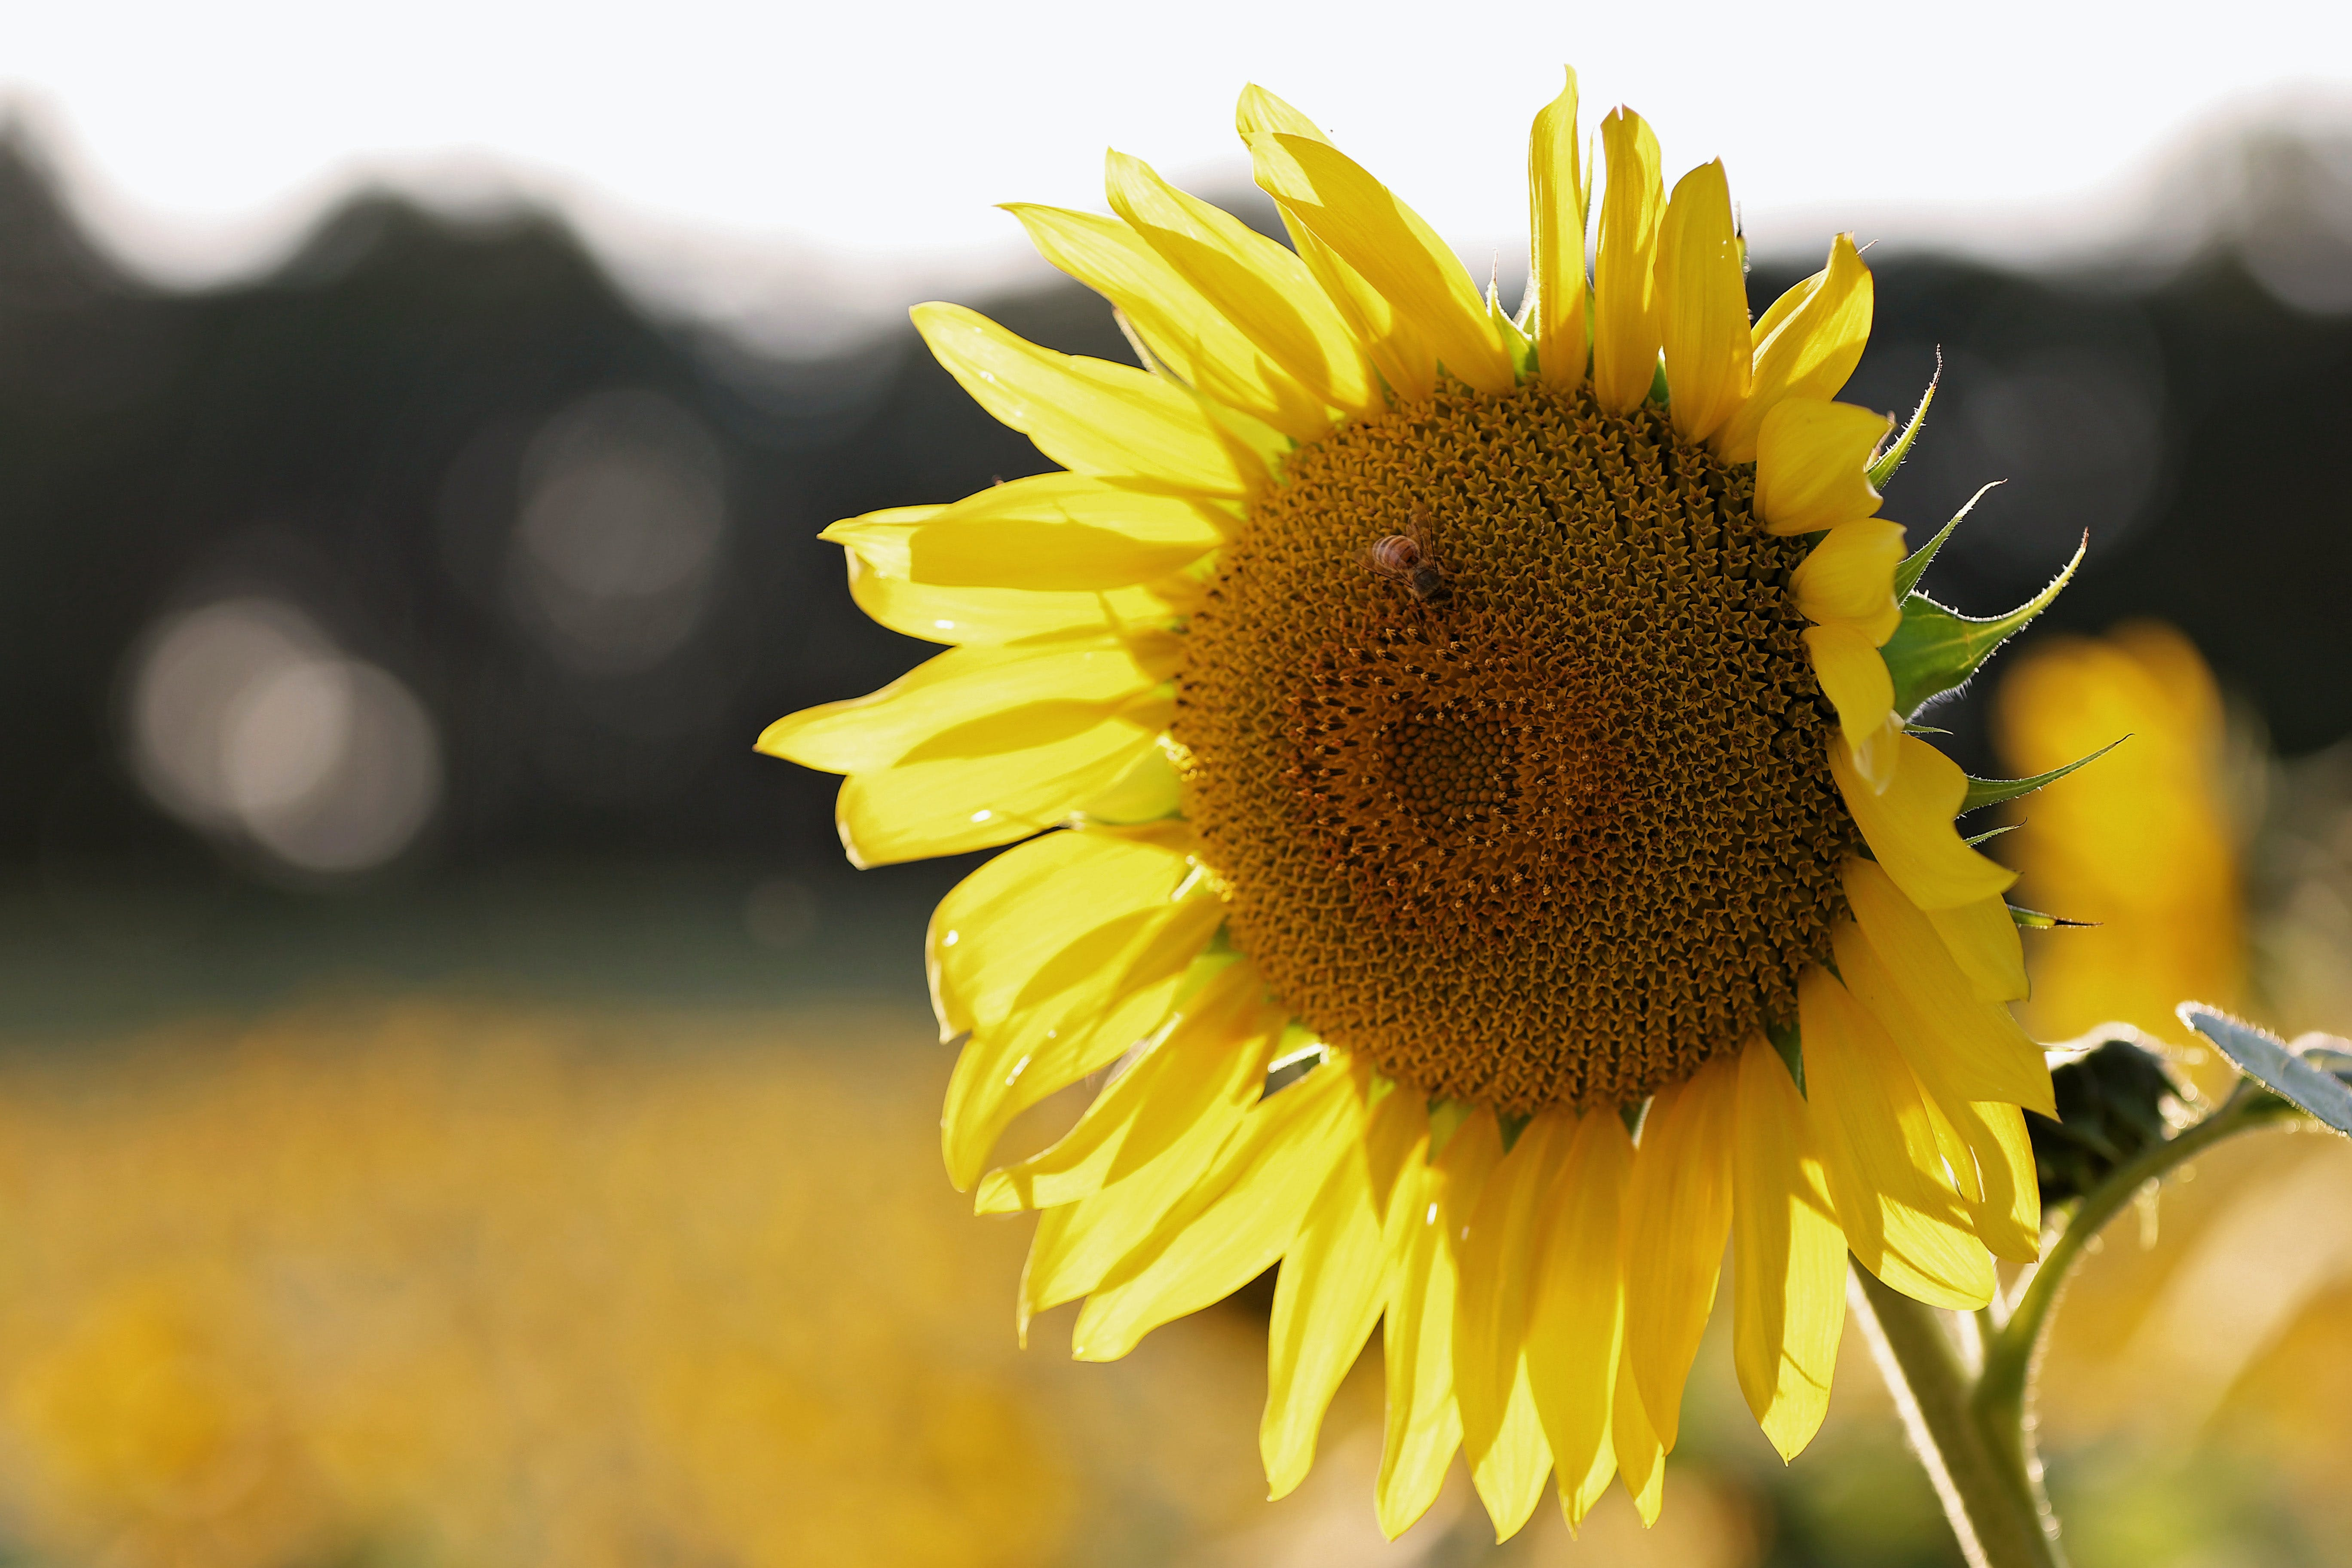 Shallow Focus Photography of Sunflower With Bee